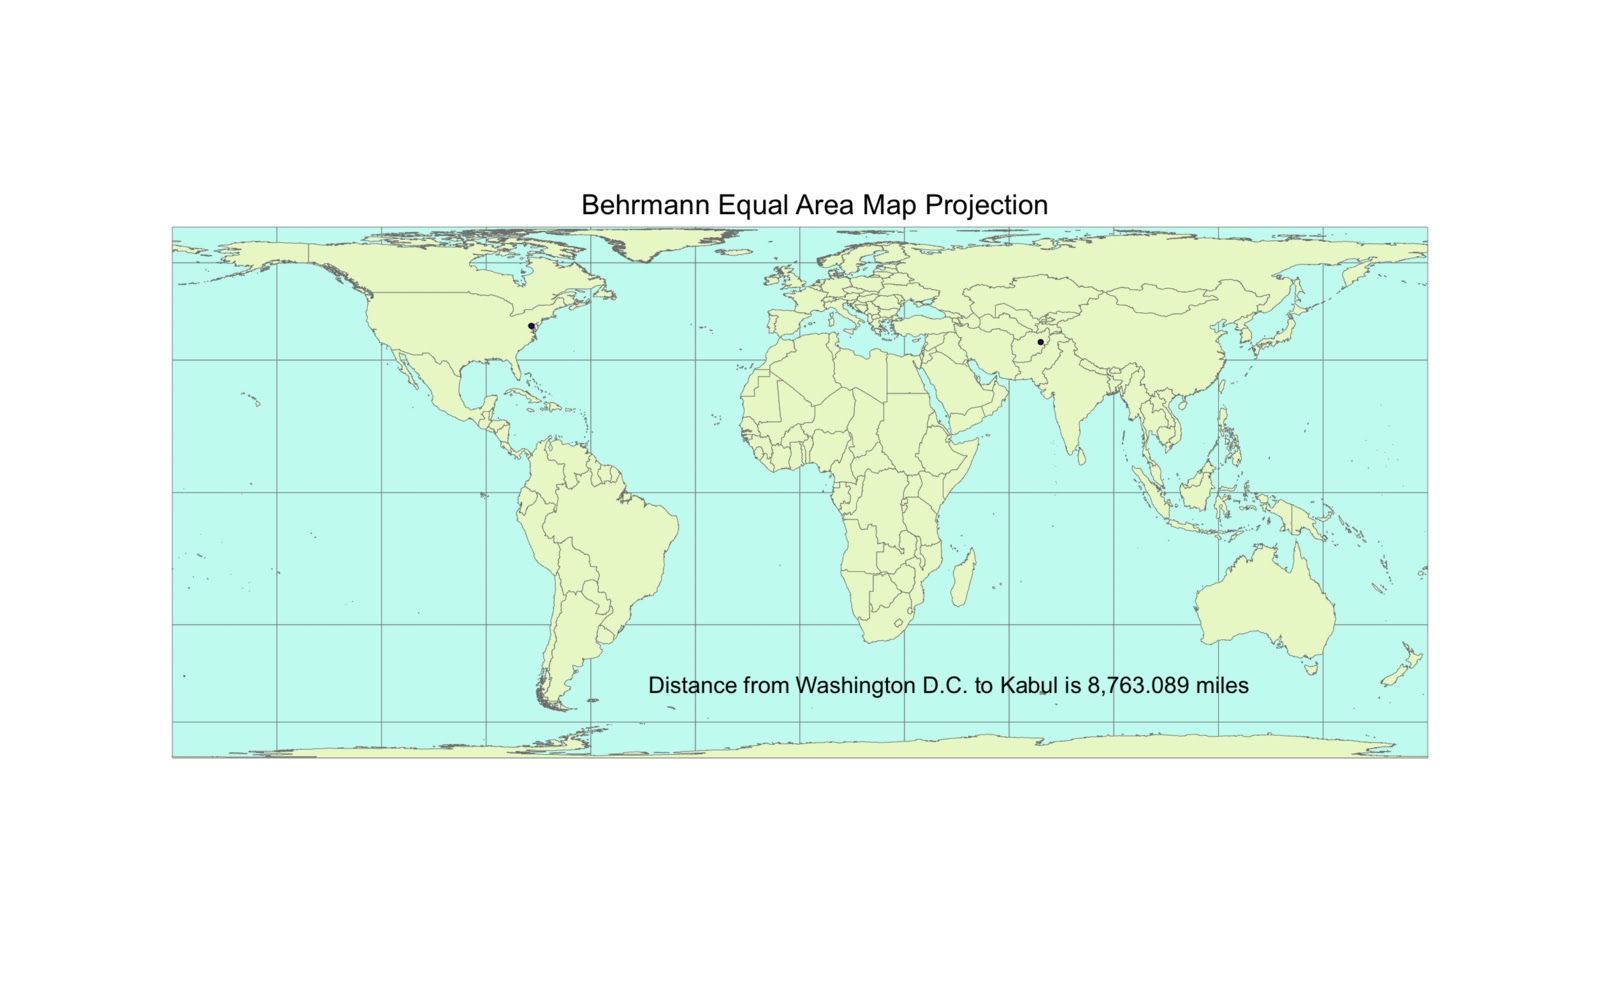 lab 5 map projections in arcgis